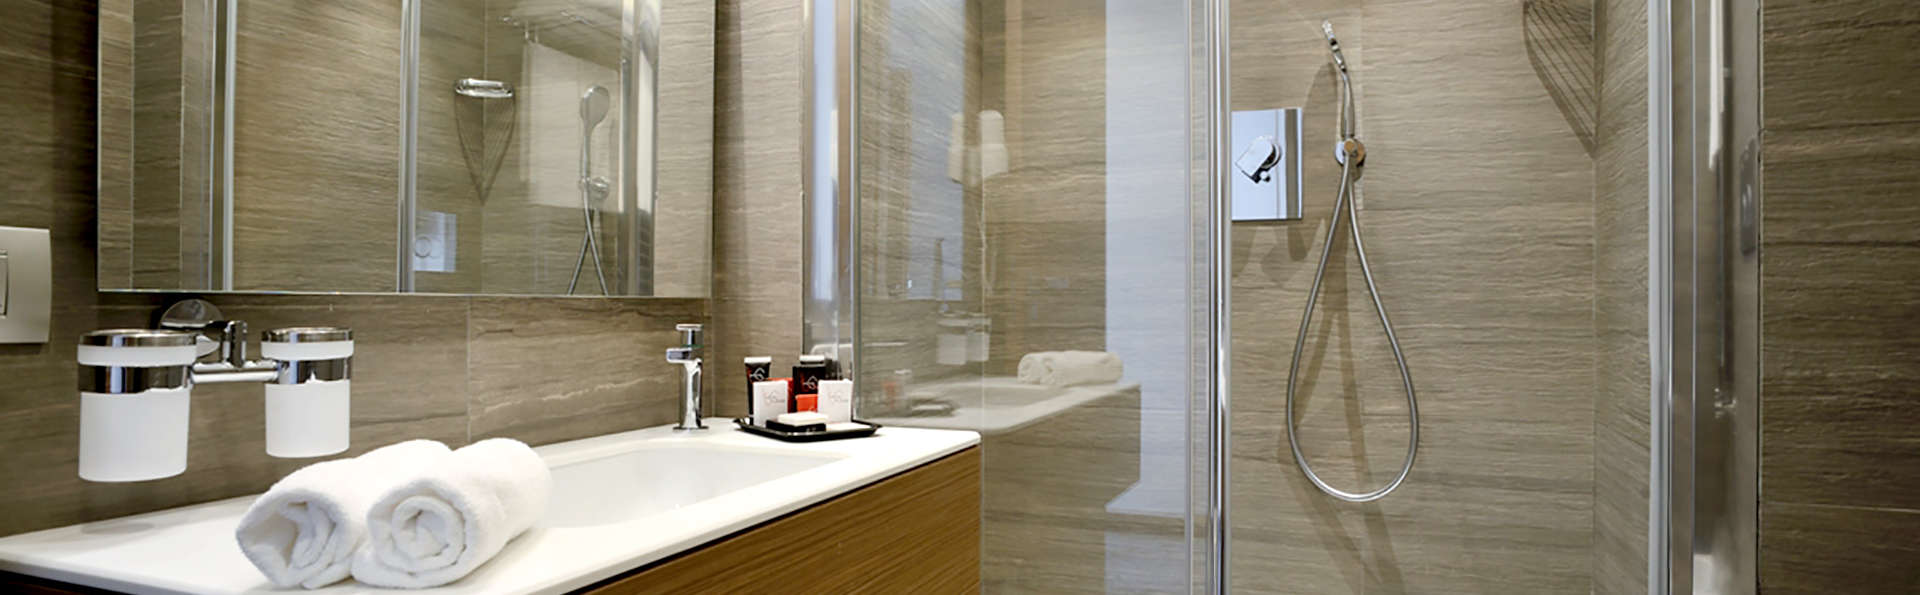 Hotel Trevi - Edit_bathroom.jpg